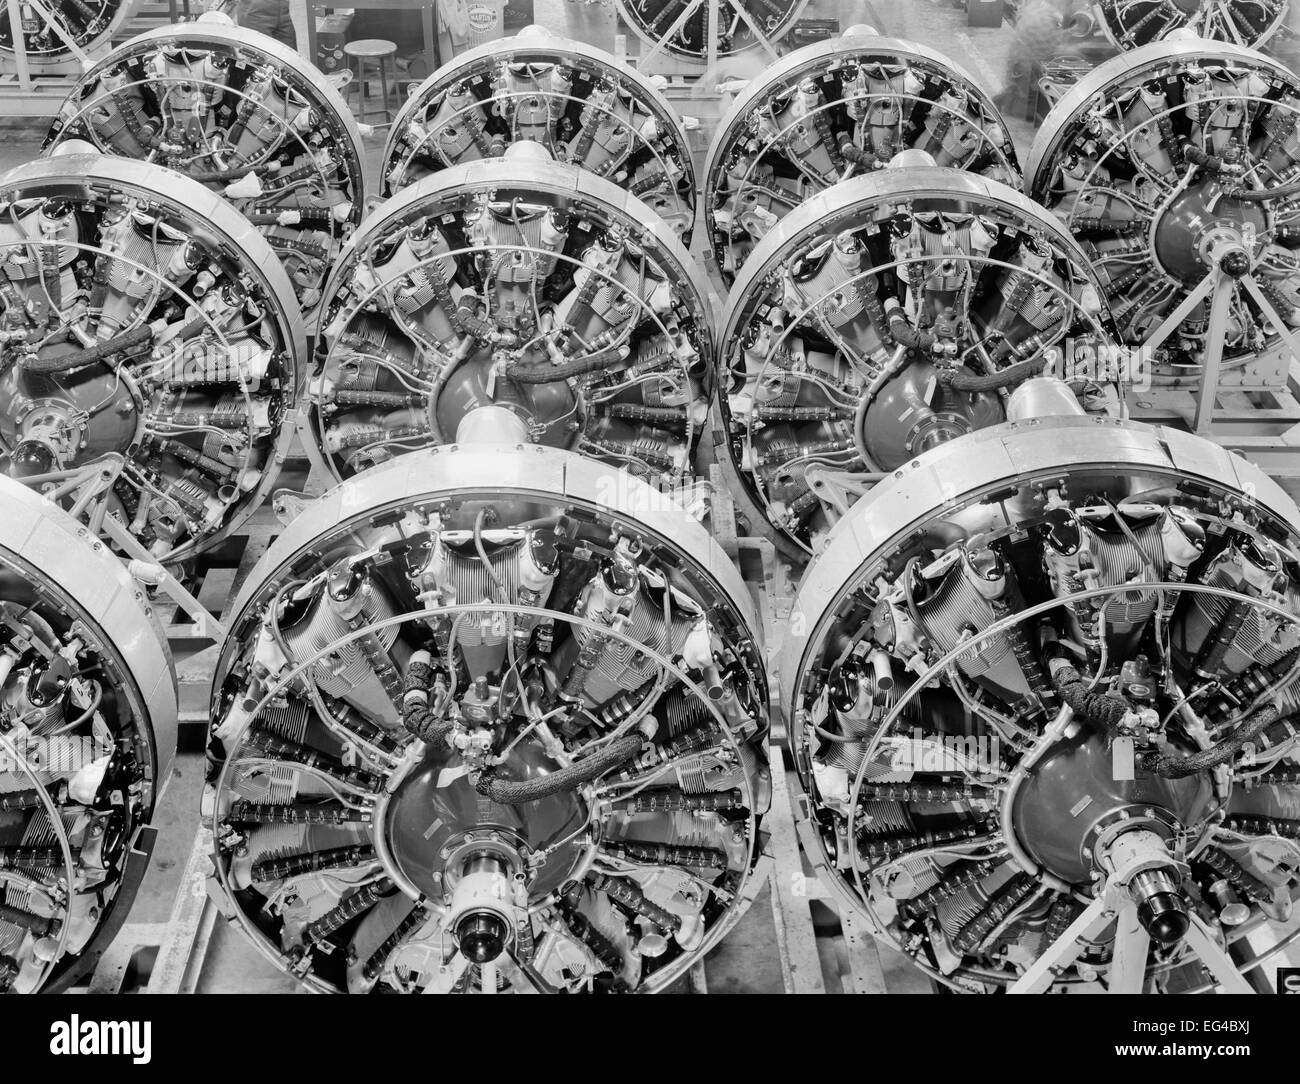 Production. B-17 heavy bomber. 1200-horsepower Wright engines for B-17F (Flying Fortress) bombers ready for installation - Stock Image